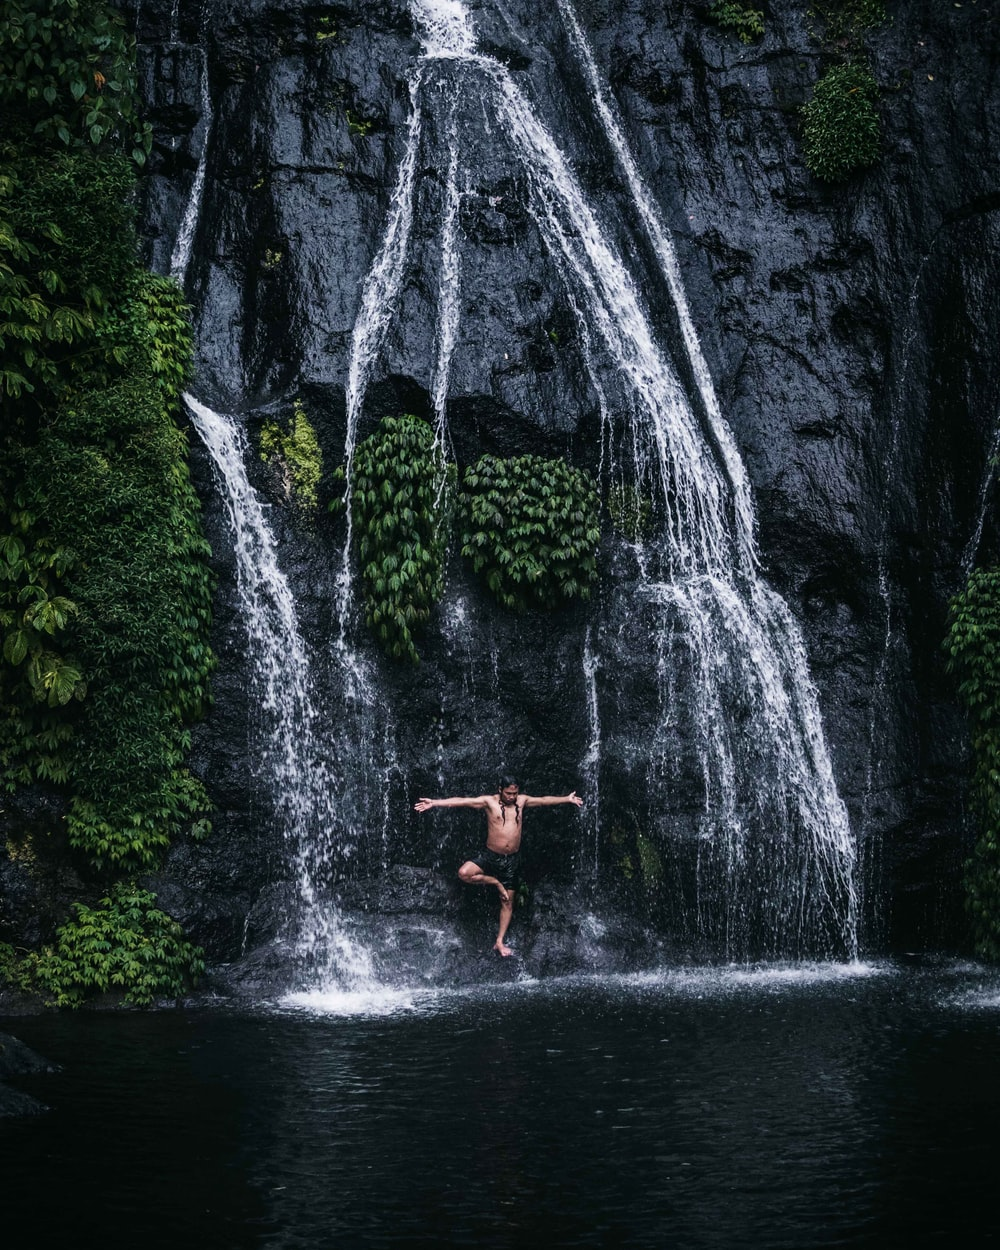 person in red shorts standing on rock in front of waterfalls during daytime